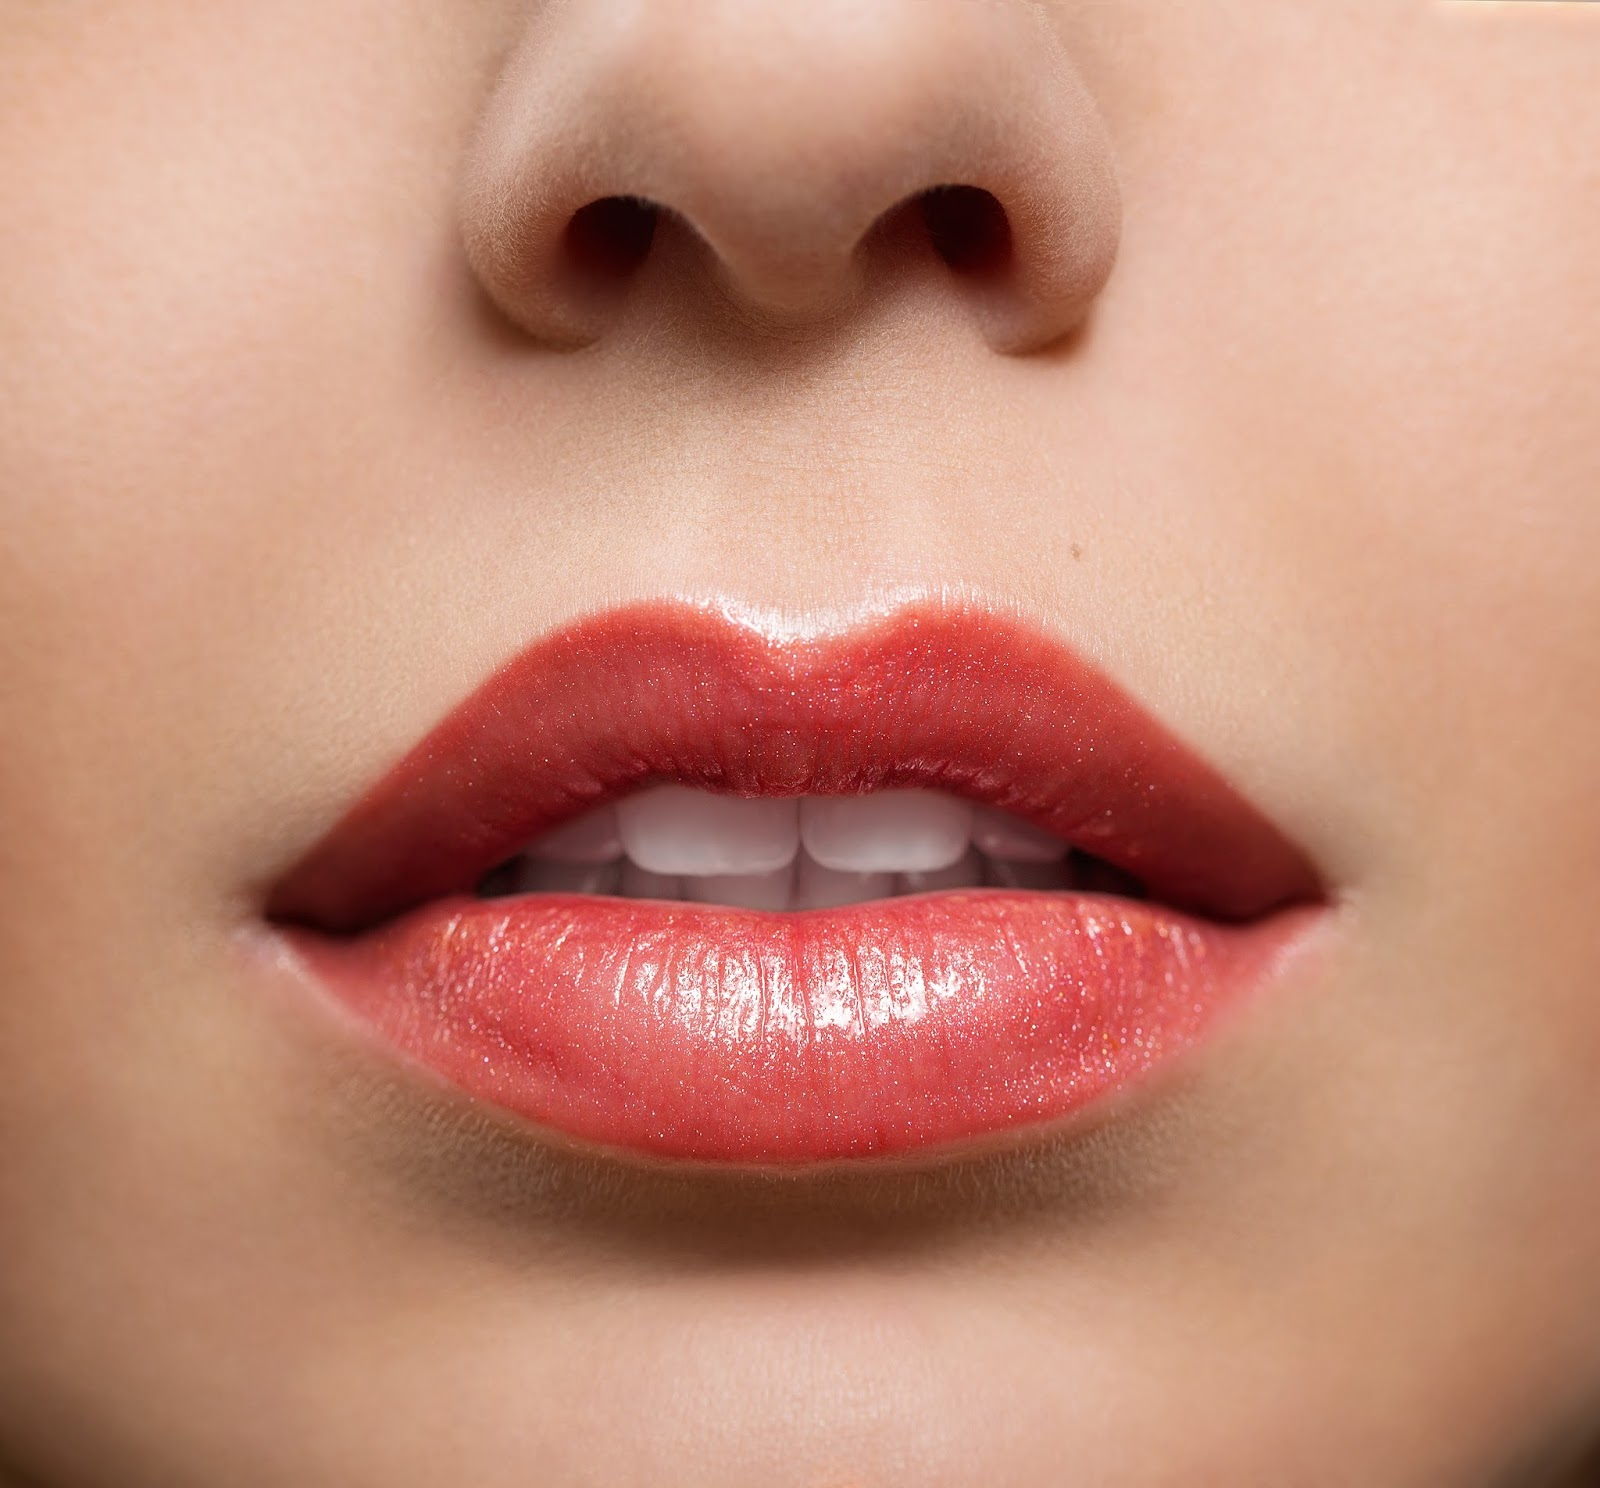 Can You Use Monobenzone Cream On The Lips